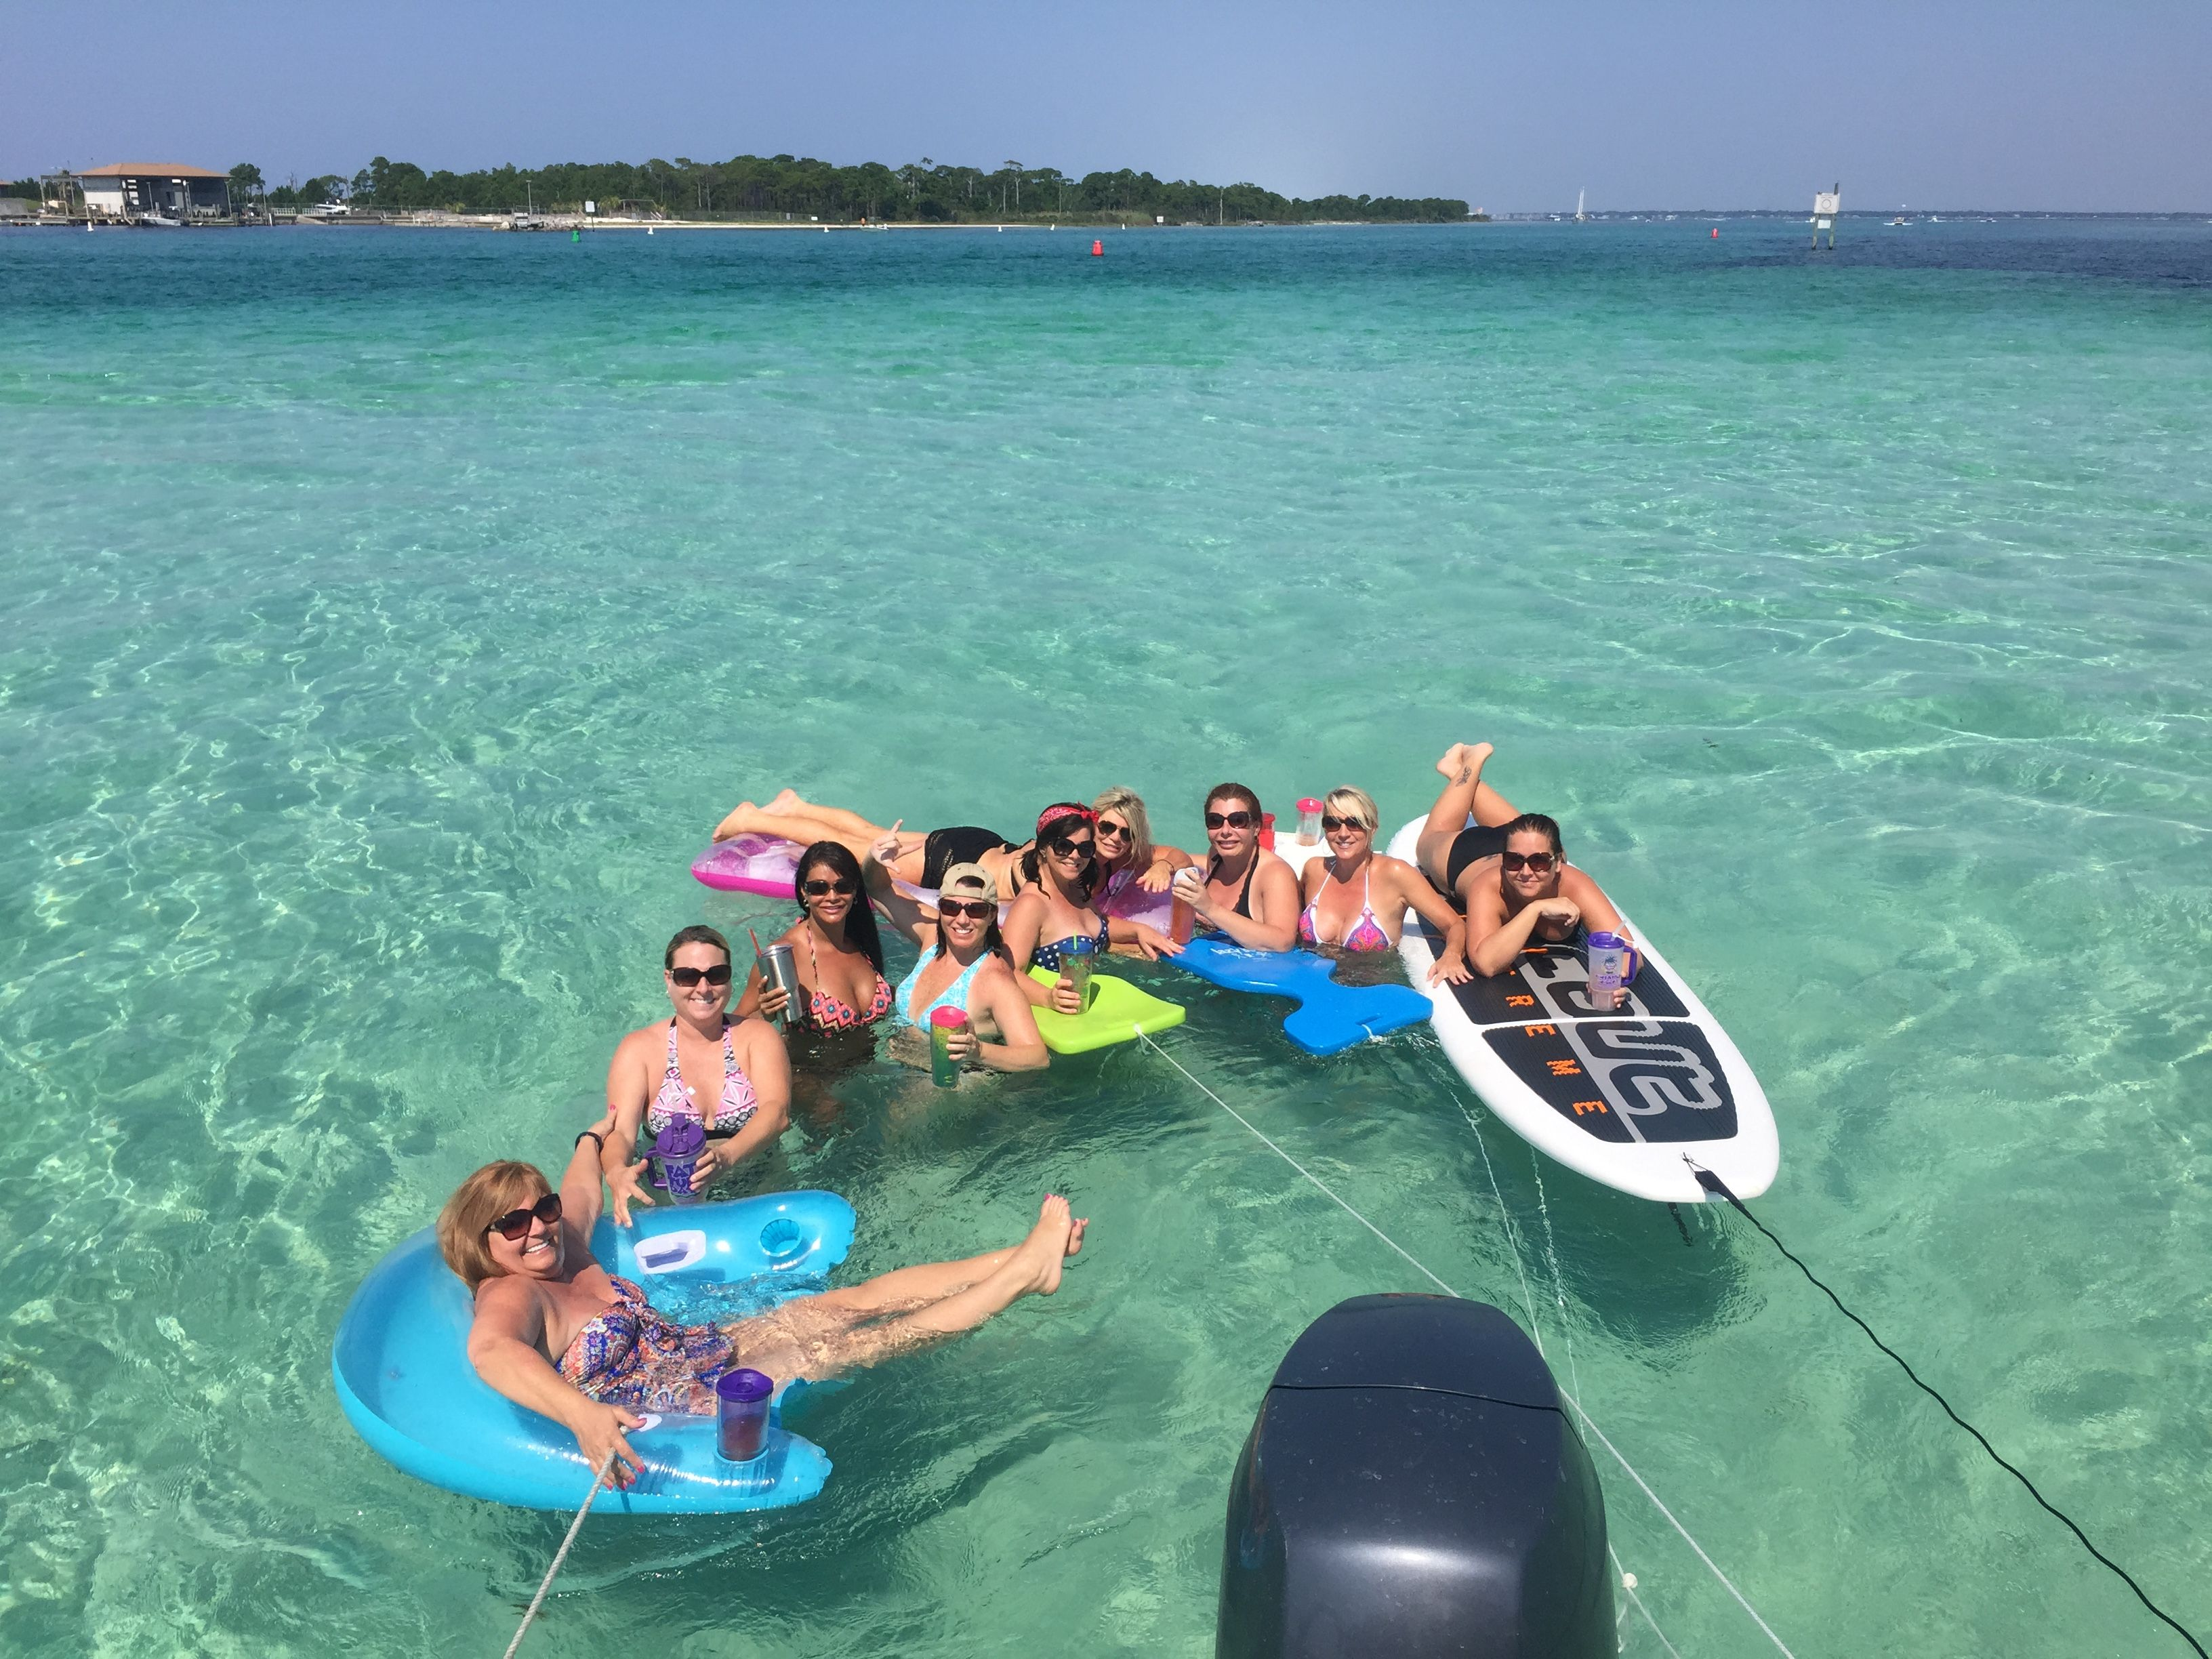 Rent a boat and paddleboard and spend the day at crab for Party boat fishing destin fl